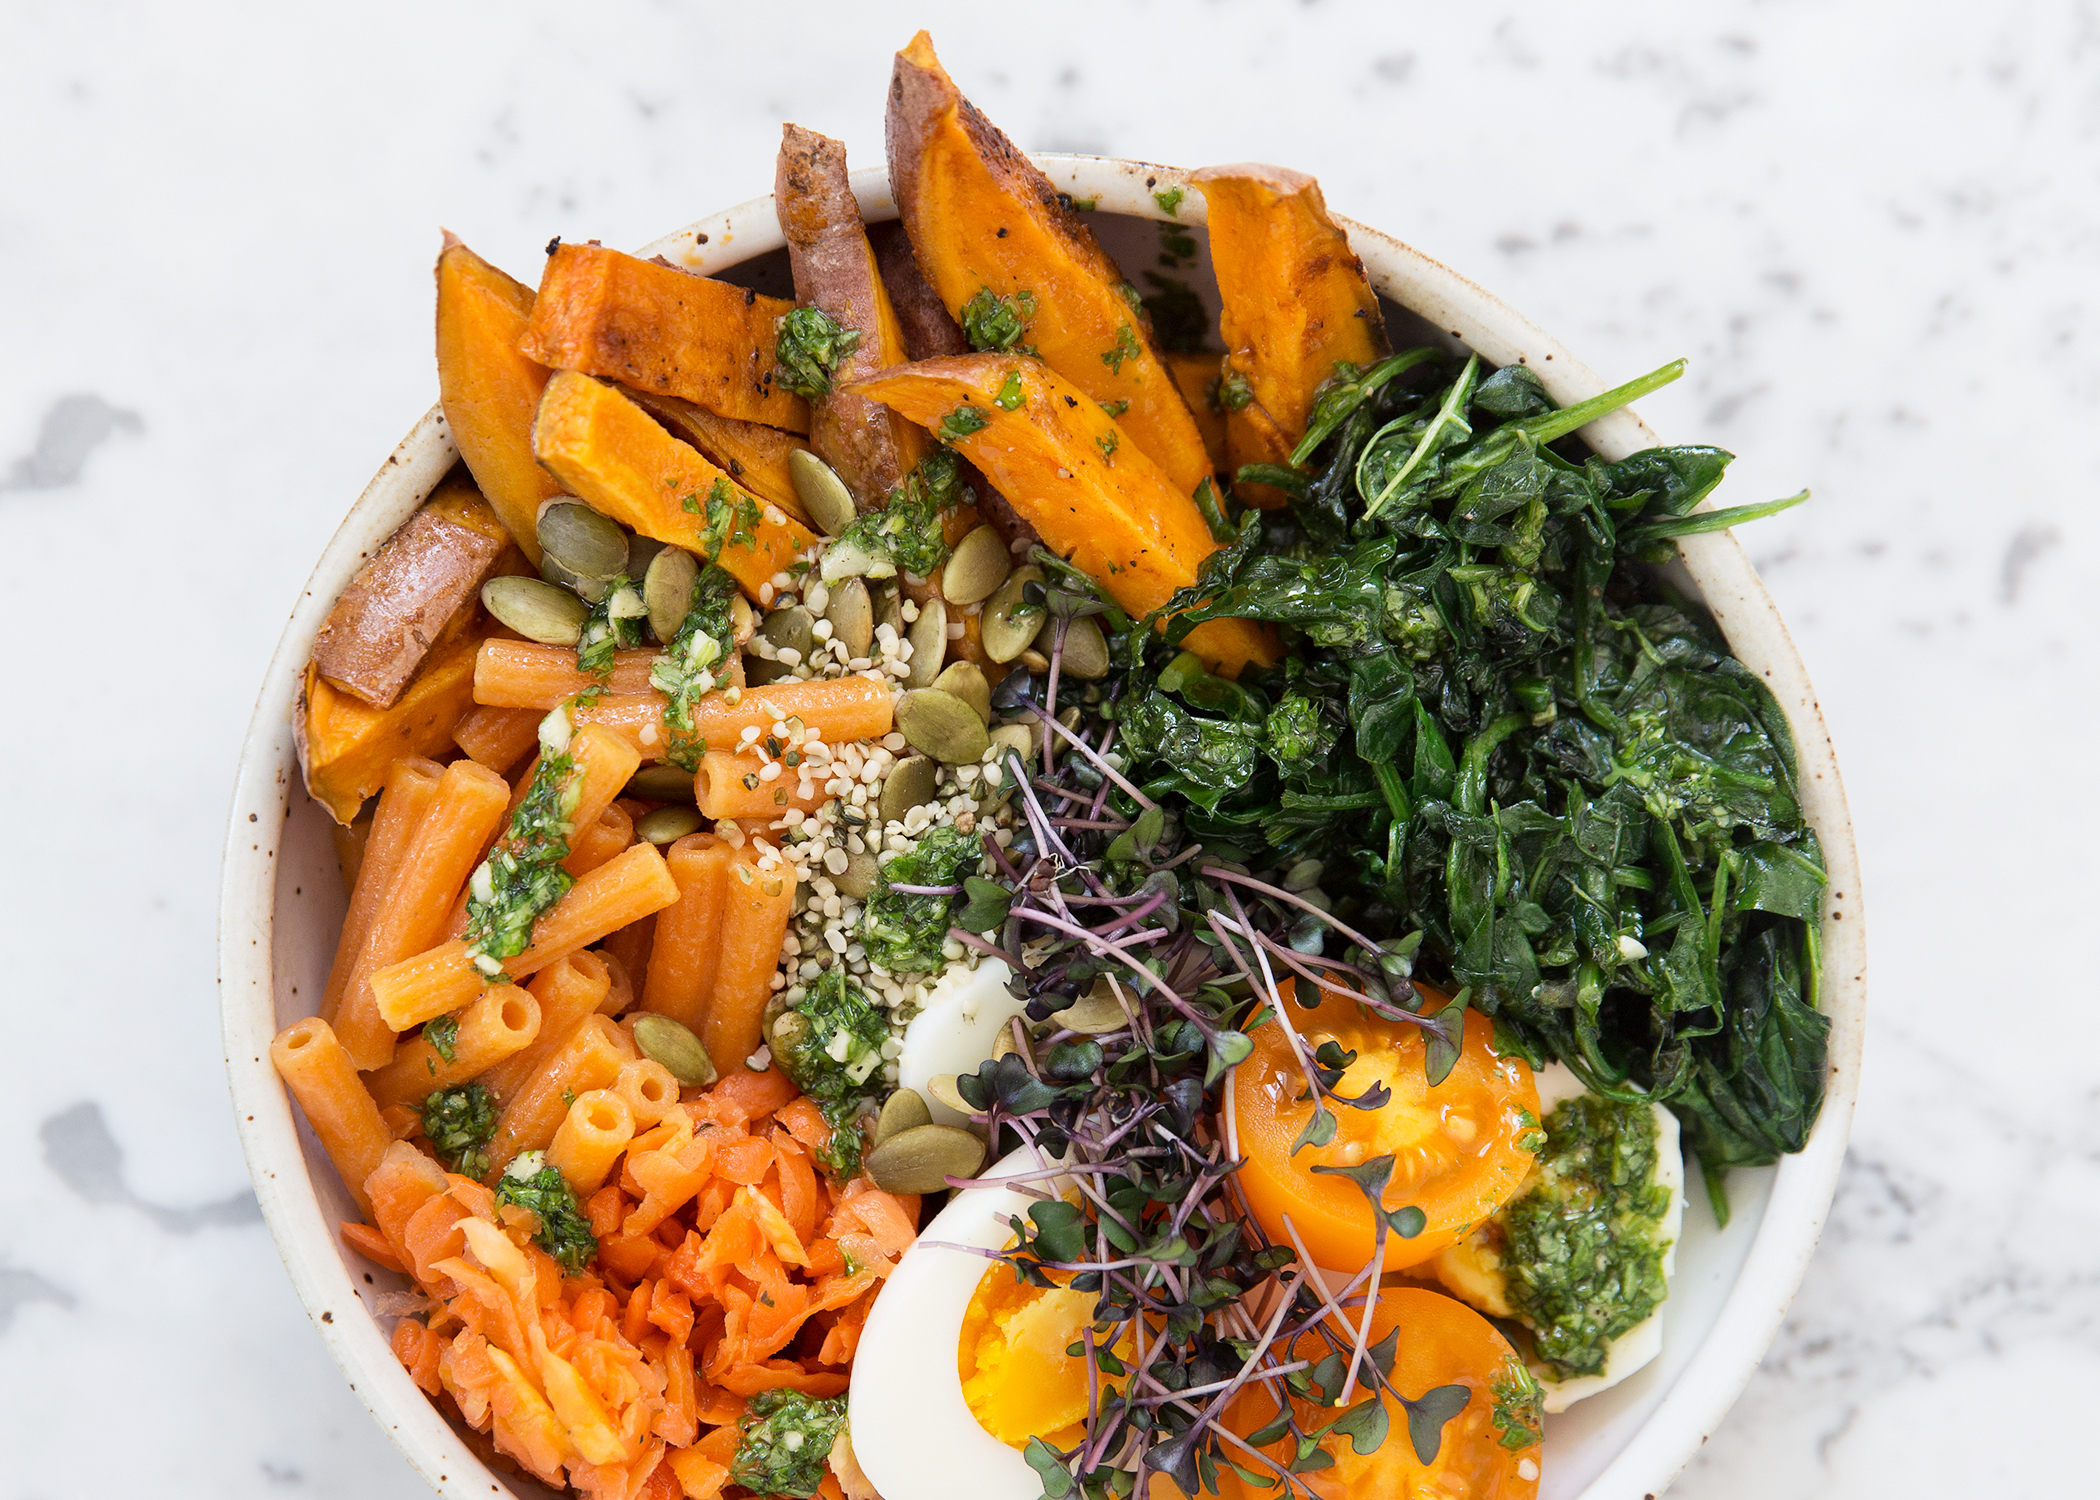 Liver cleansing foods like carrots, sweet potatoes, cilantro, Garlic, spinach, kale and tomatoes are great tools to efficiently flush out excess estrogen.